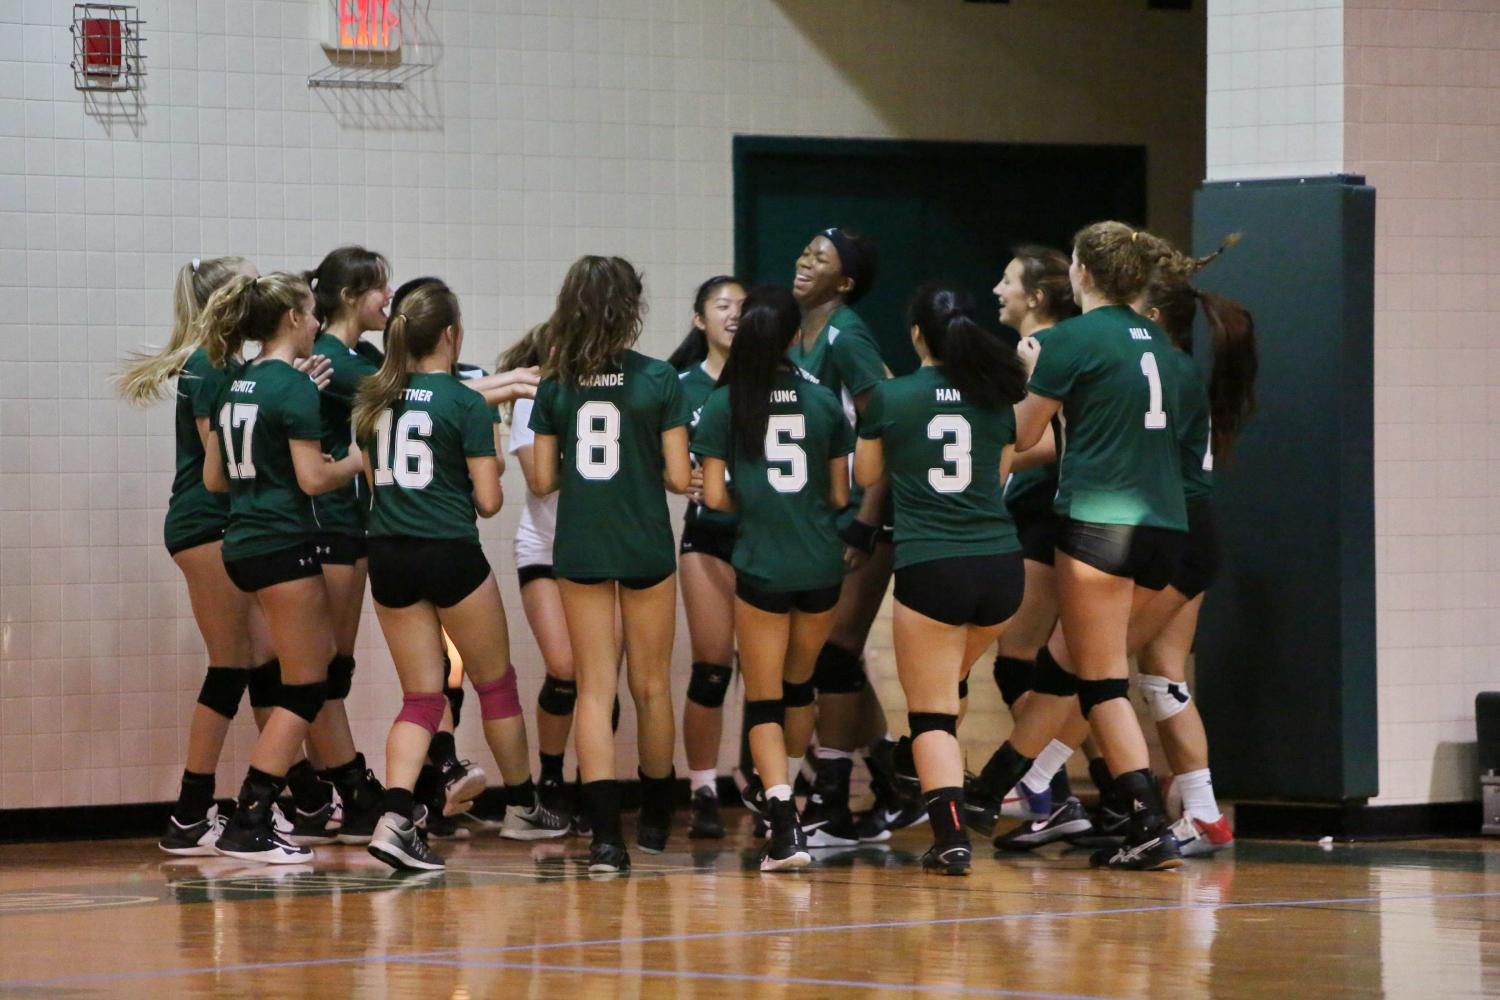 Girls' Volleyball finishing on a high note